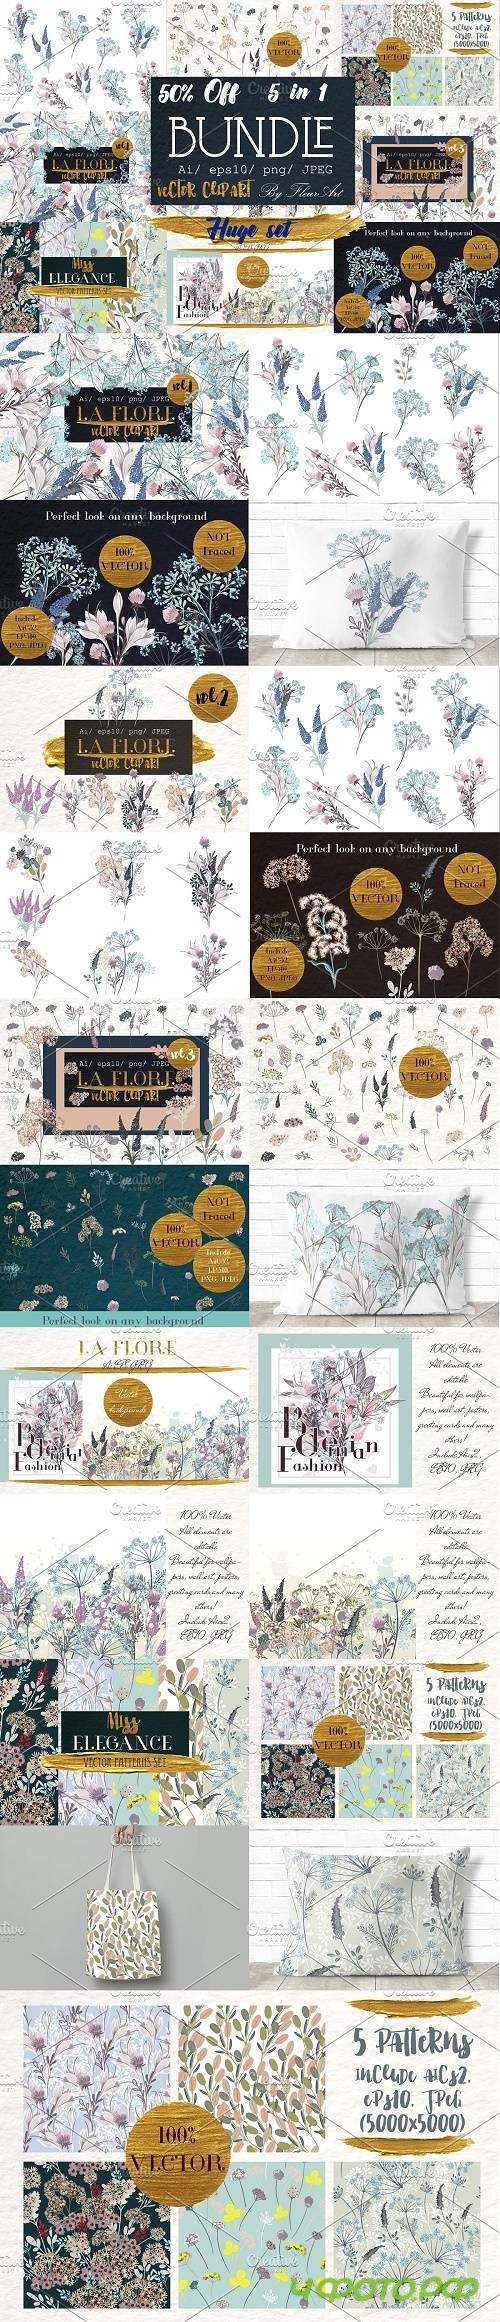 Flora Huge illustration bundle - 2988387